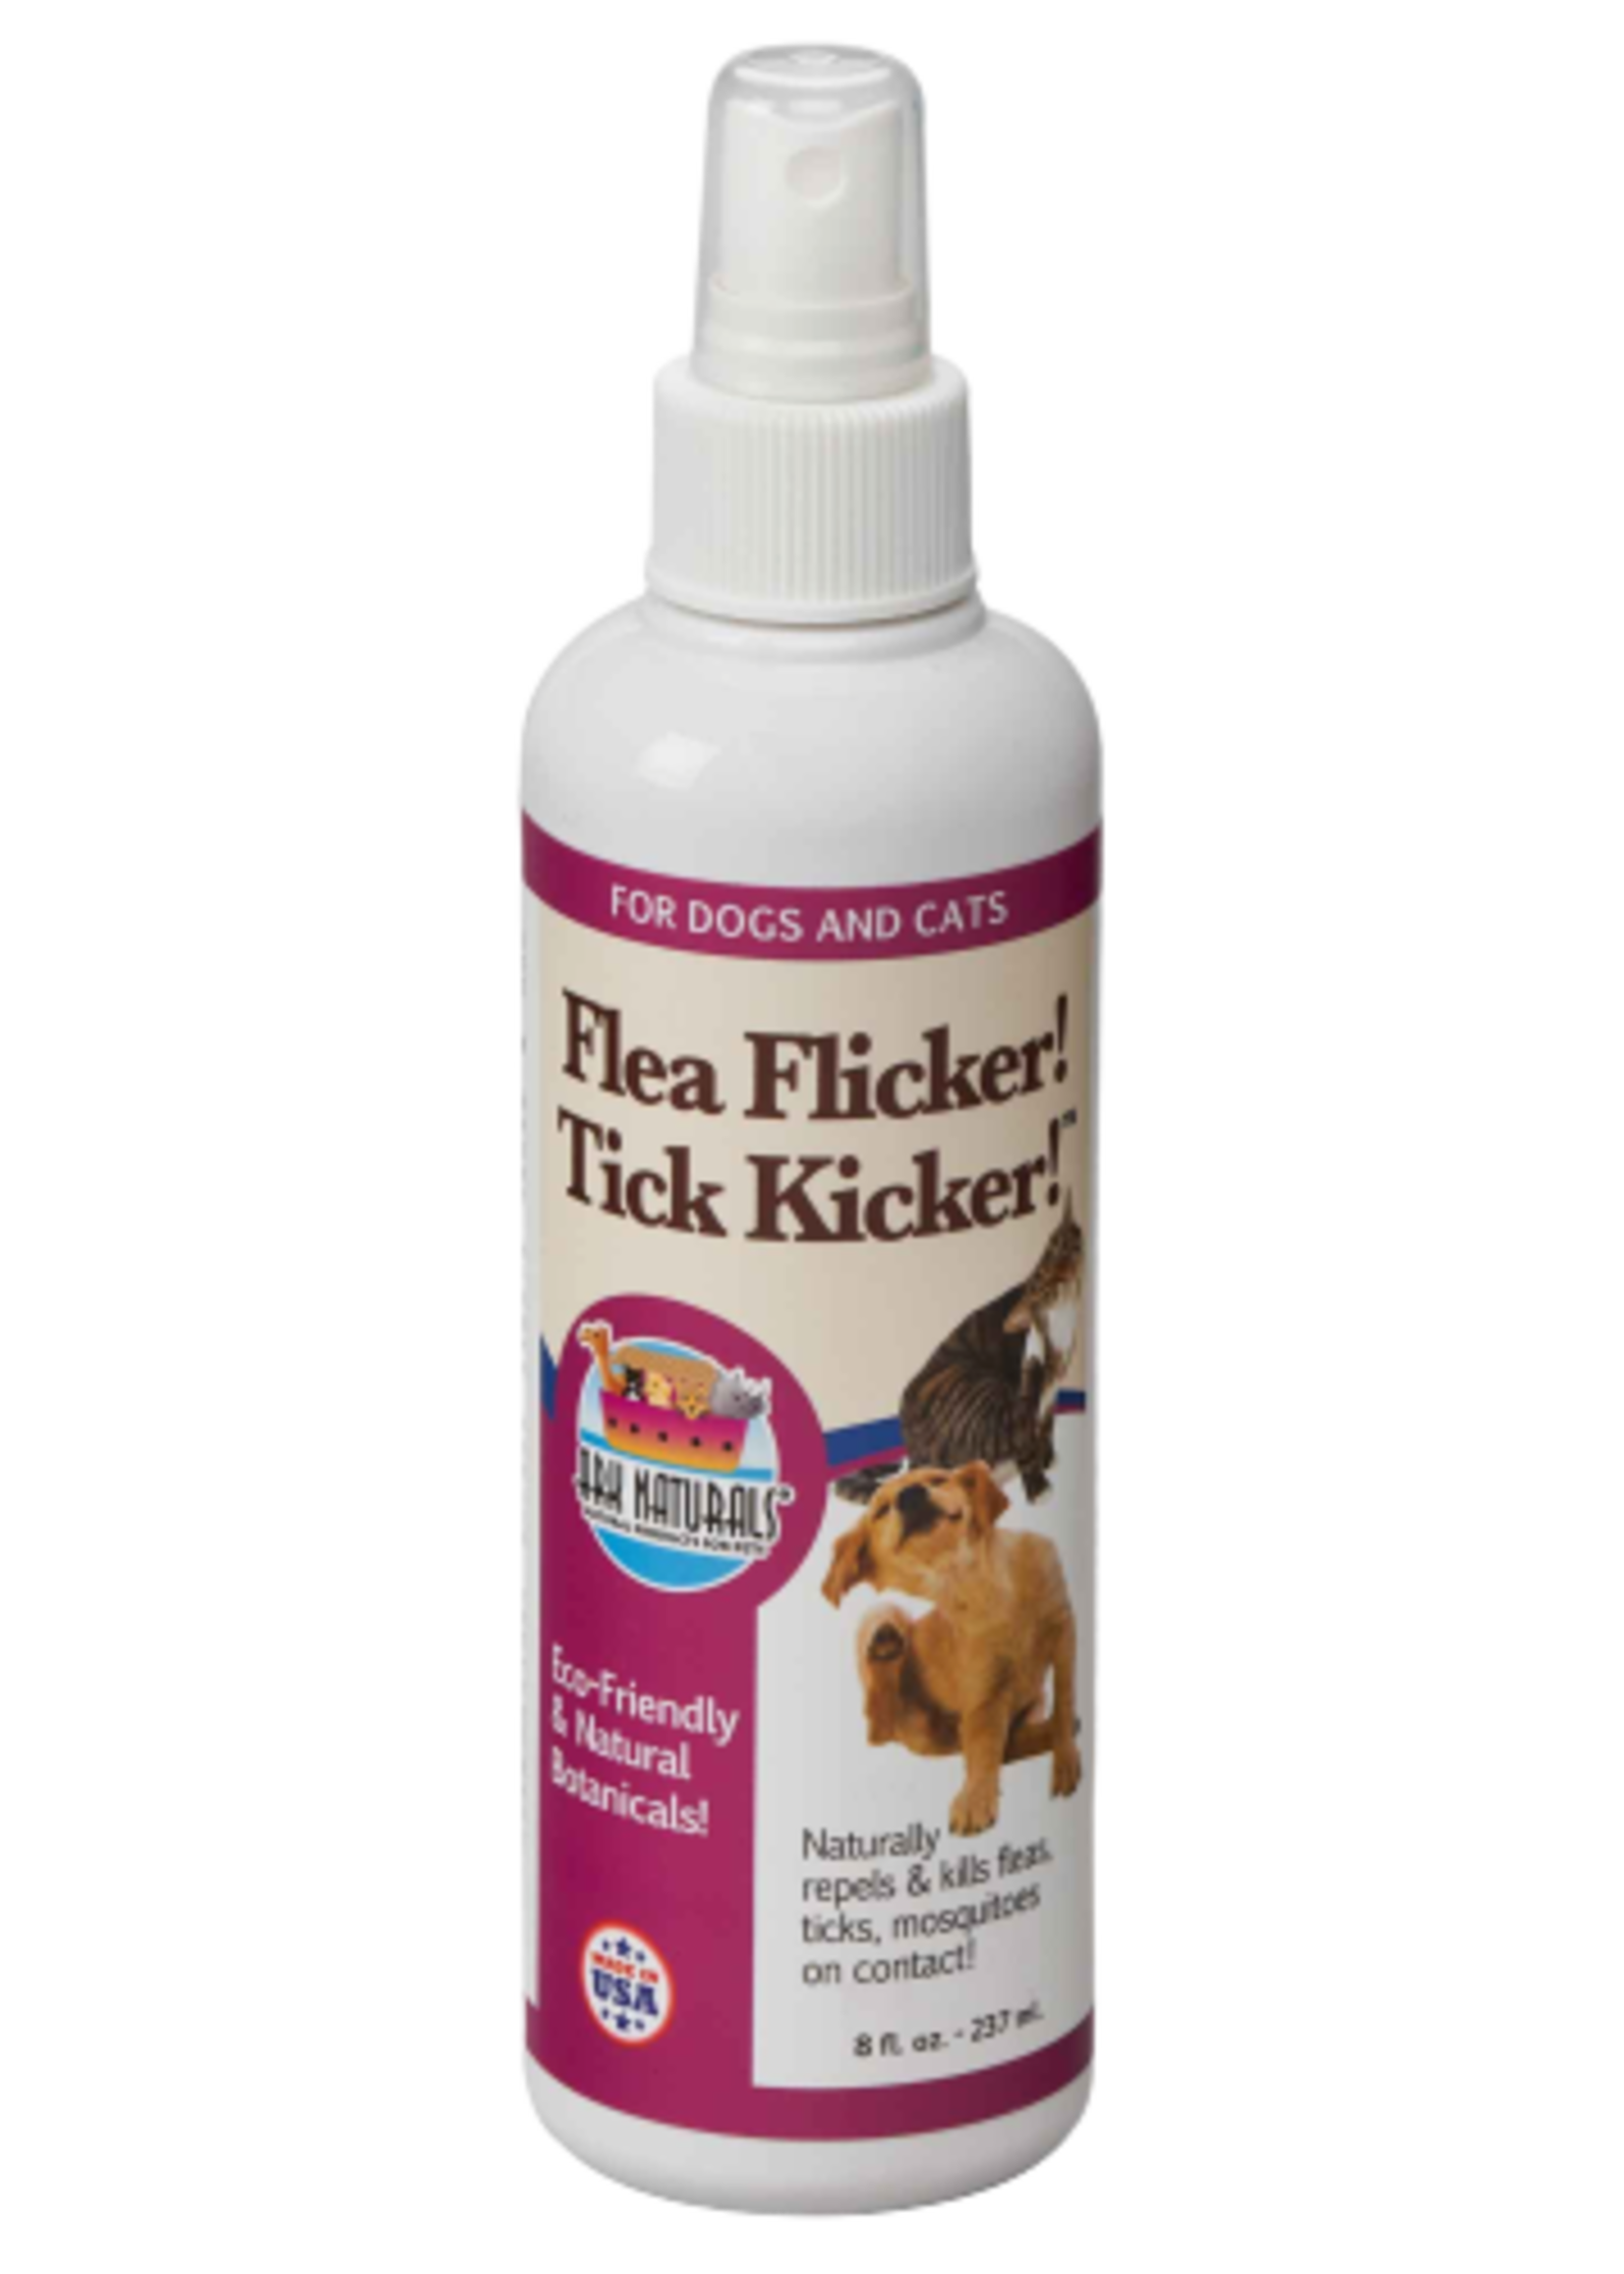 ARK NATURALS Ark Naturals Flea Flicker! Tick Kicker! 8 oz